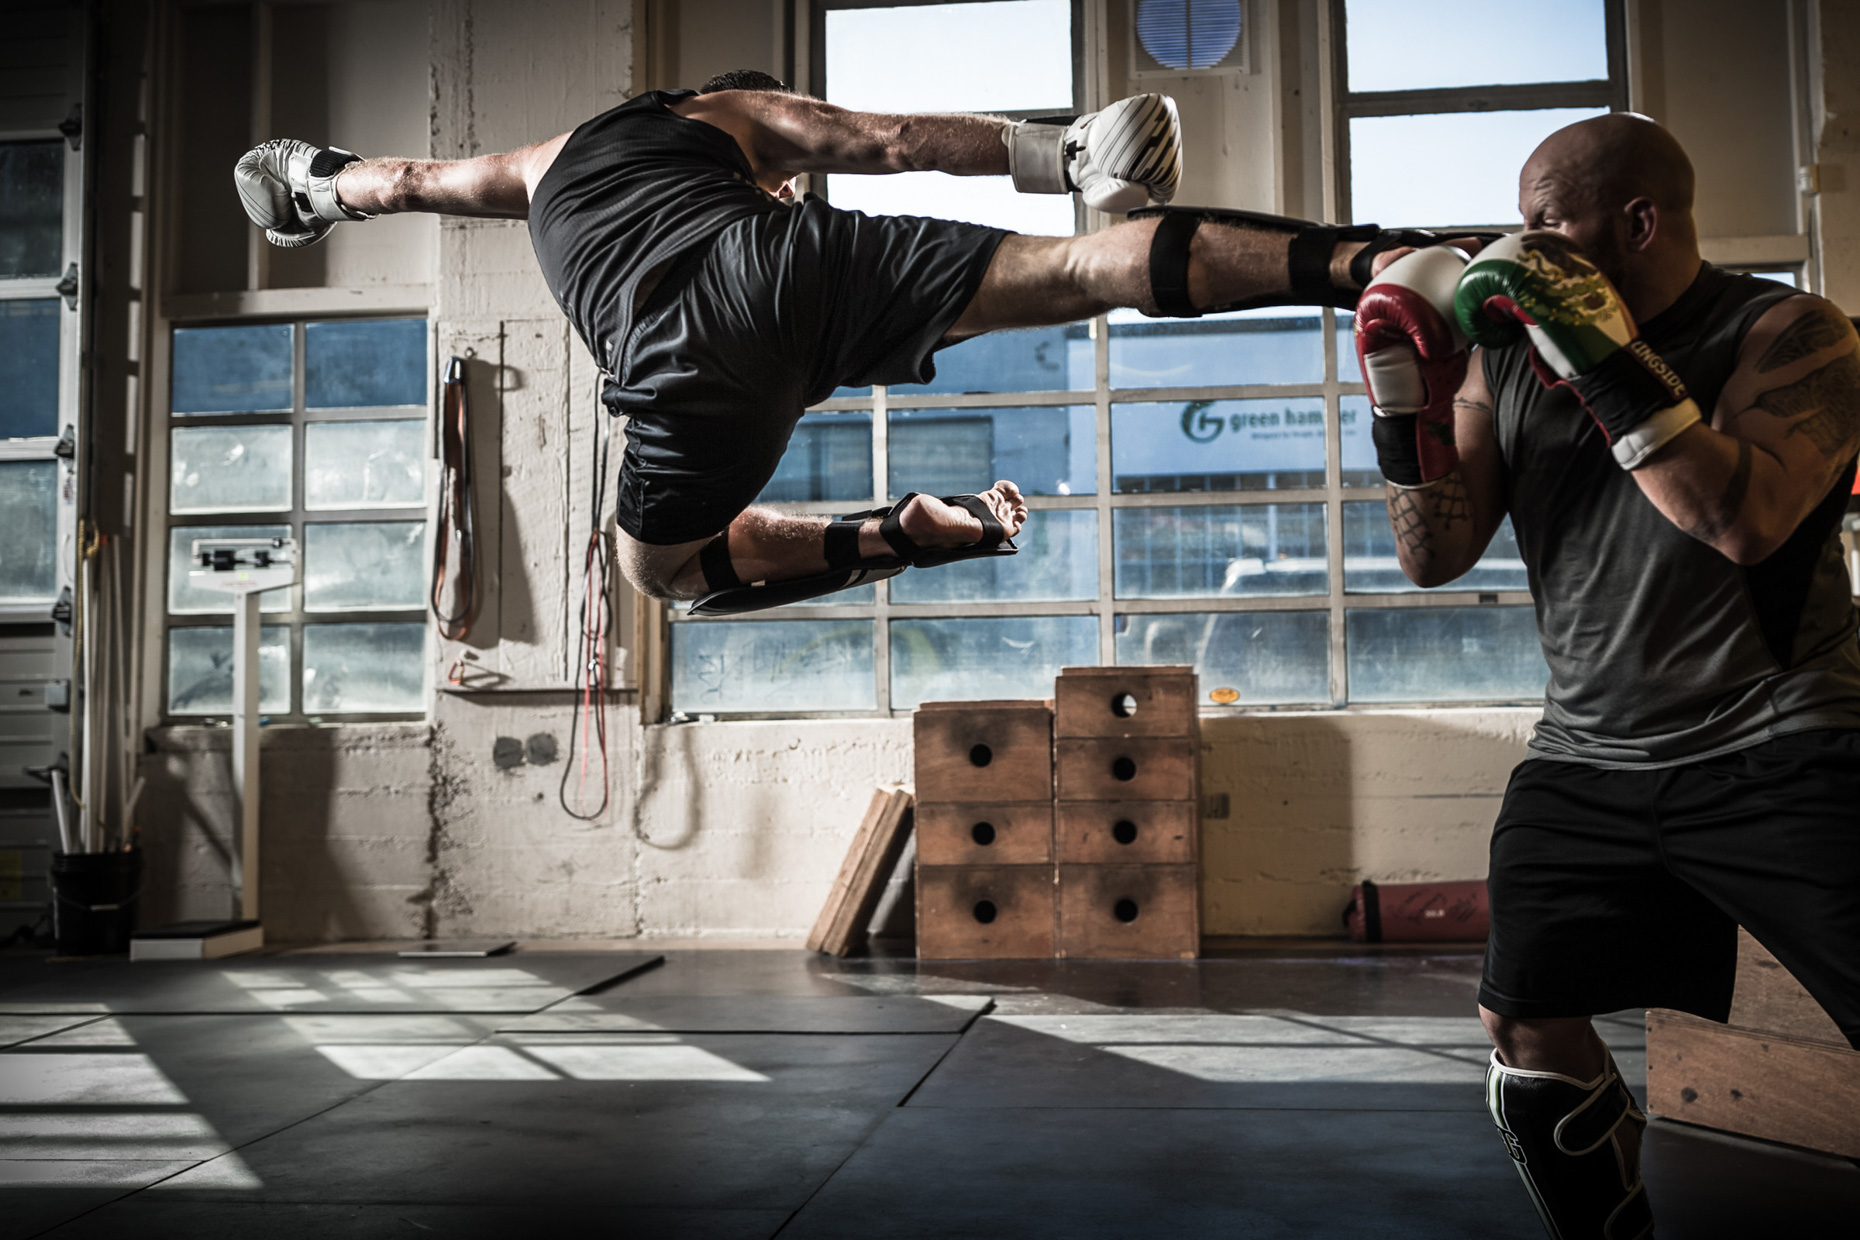 MMA training in crossfit fitness gym